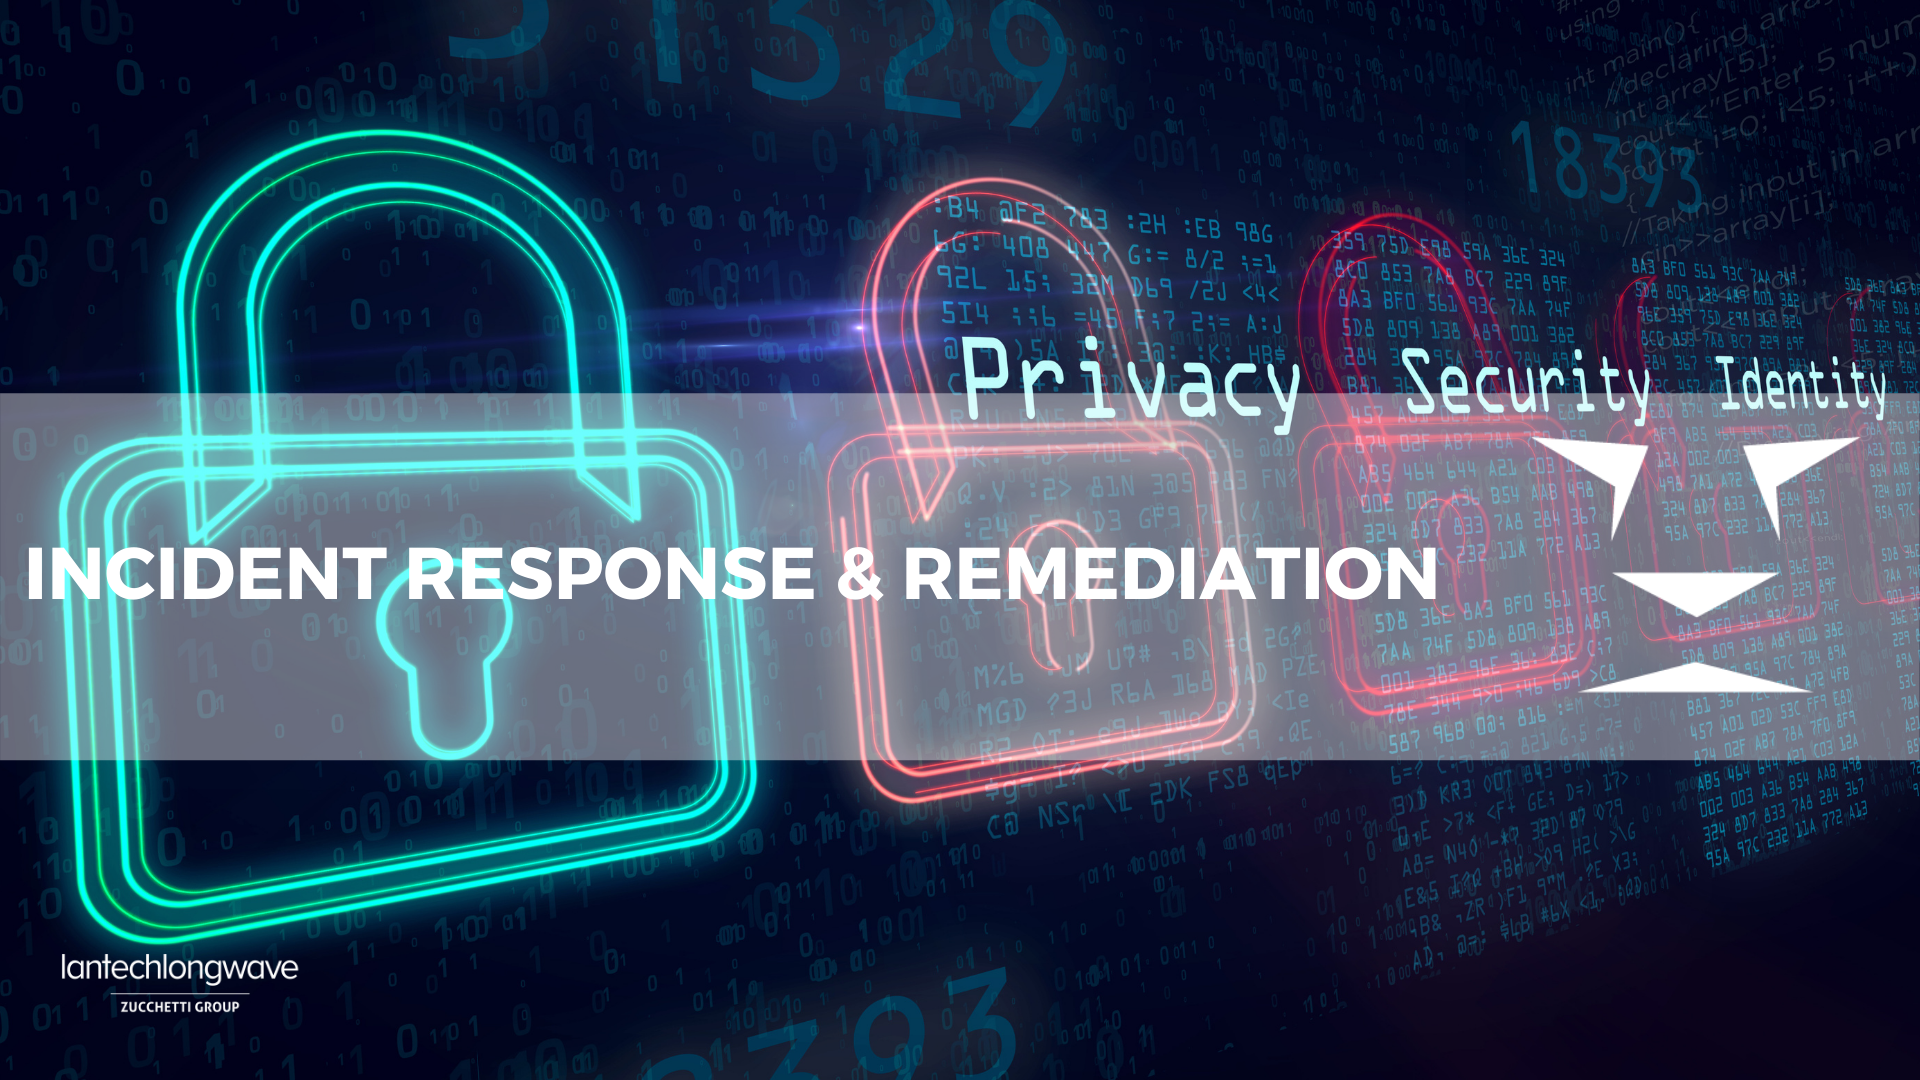 Incident Response & Remediation: scopri il servizio gestito LION Cybersecurity